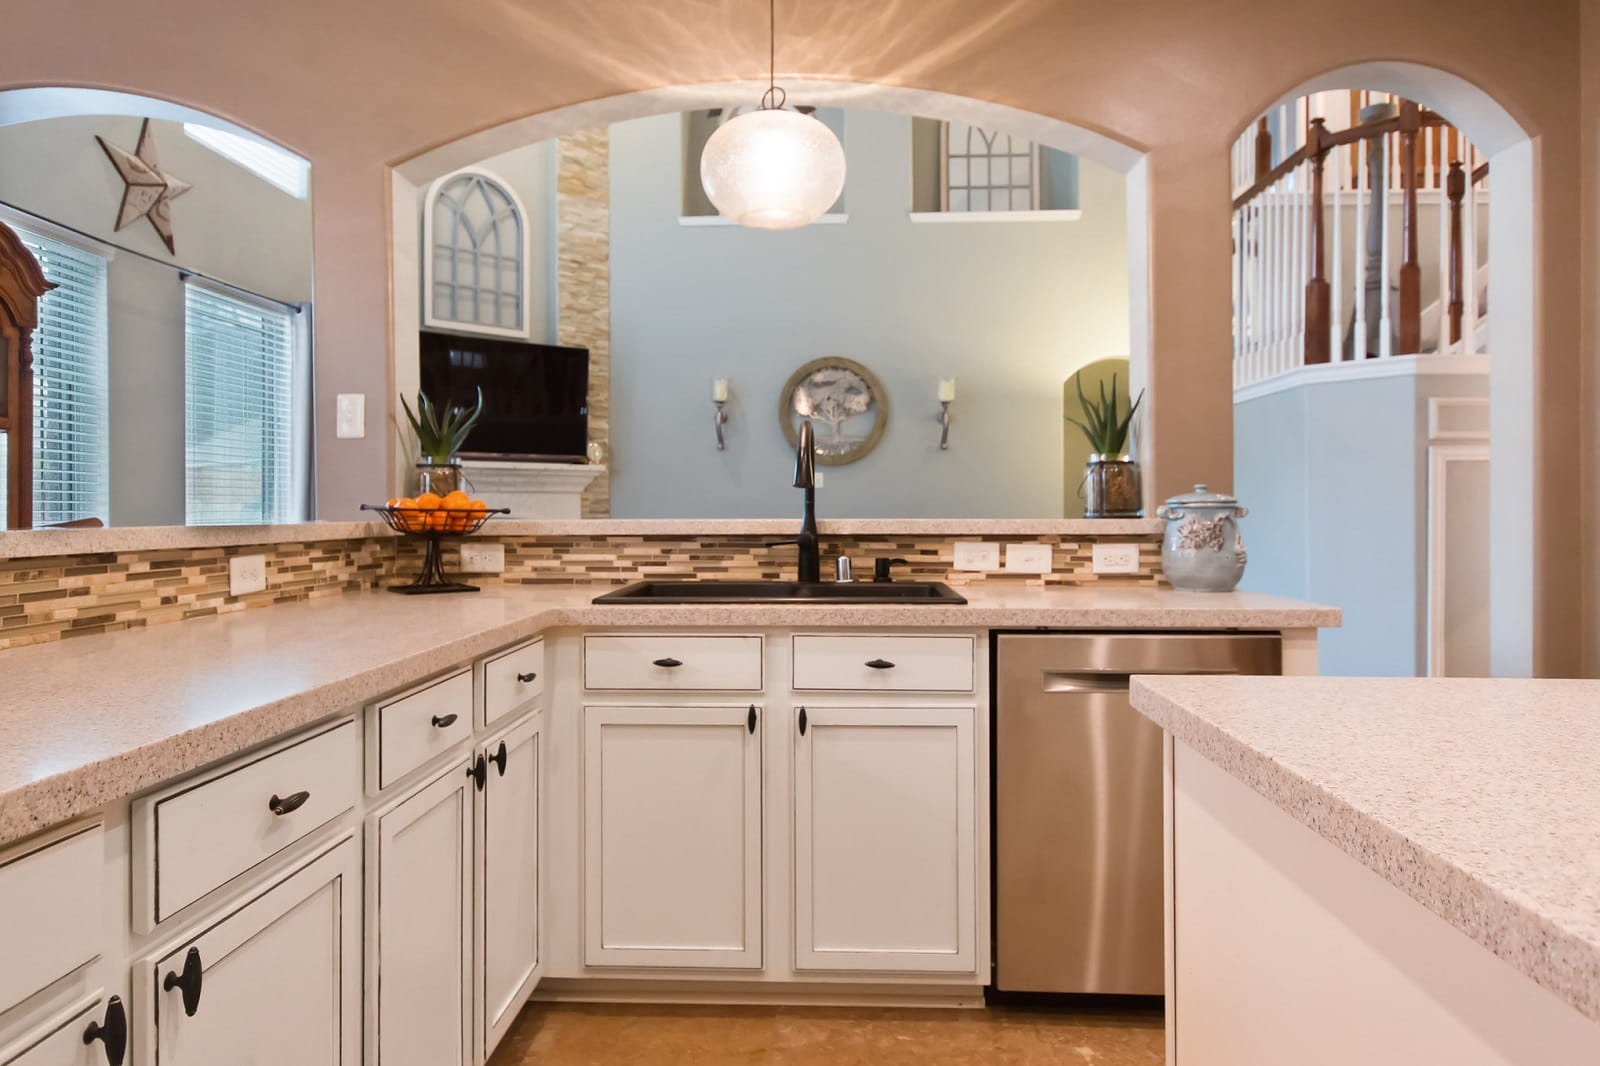 Real Estate Photographers in The Woodlands - TX - Kitchen View